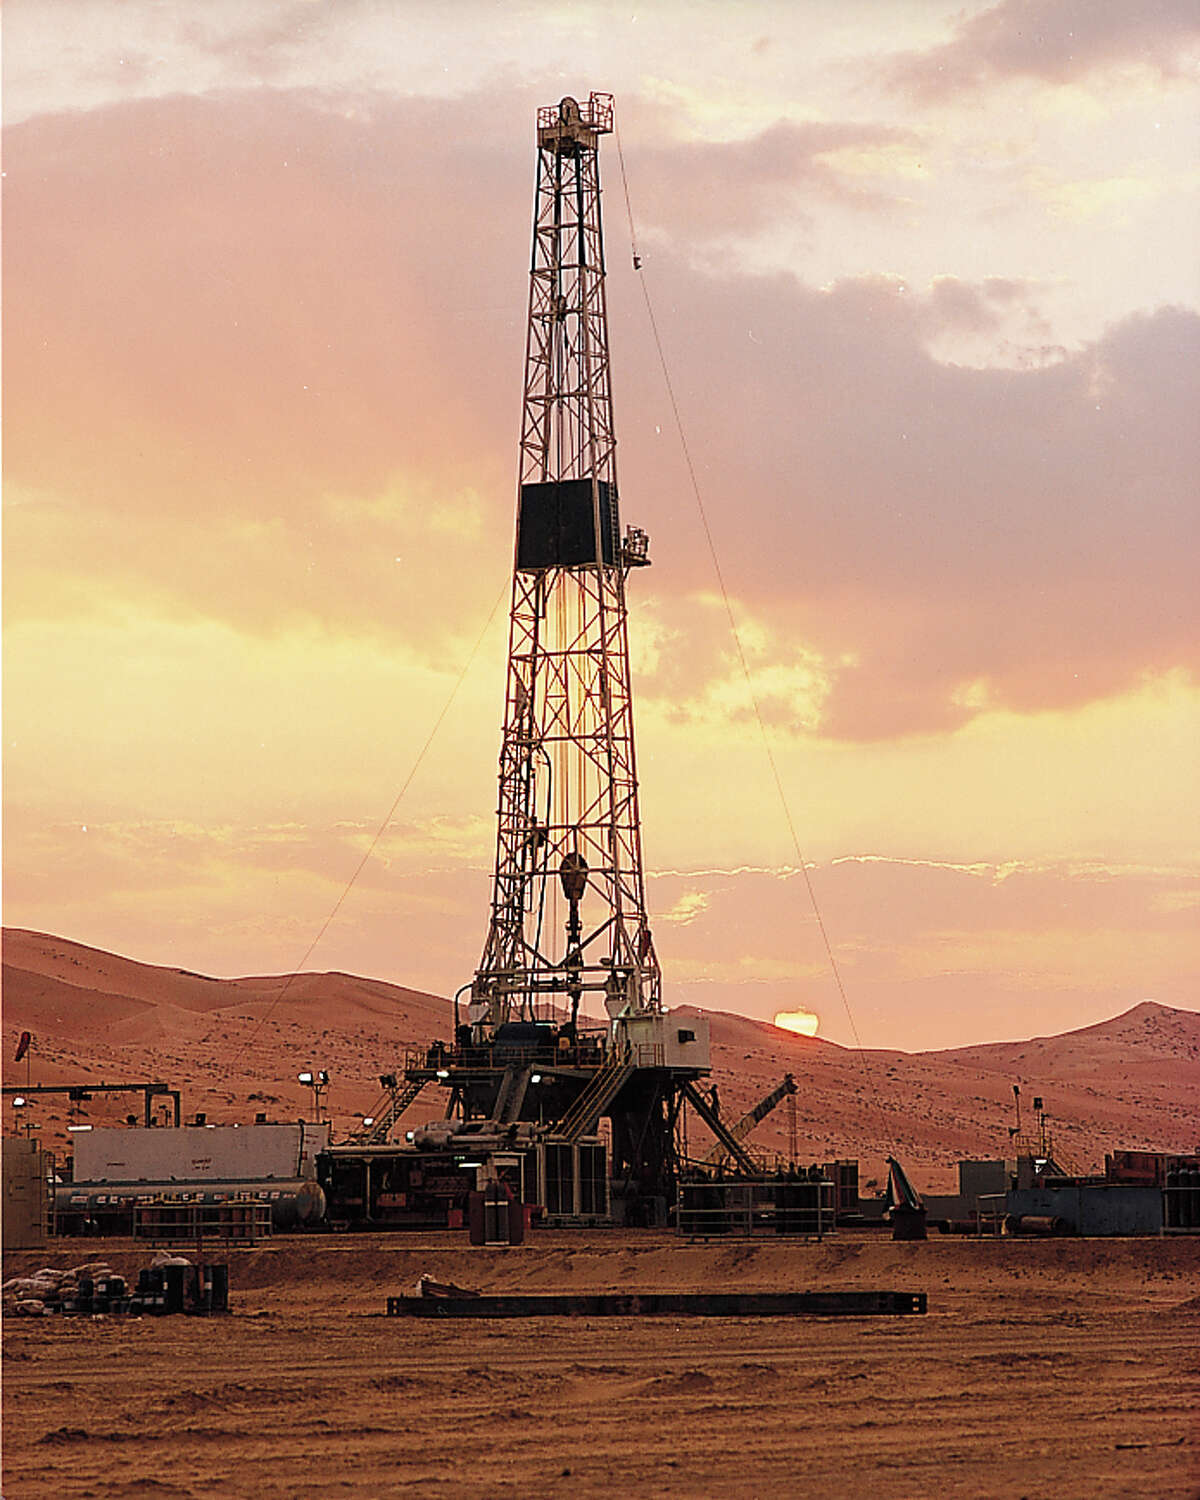 An oil rig works in Saudi Arabia, which has lowered its oil prices to compete with U.S. production, rather than employing its historical tactic of cutting output to force up prices. (Saudi Aramco photo)